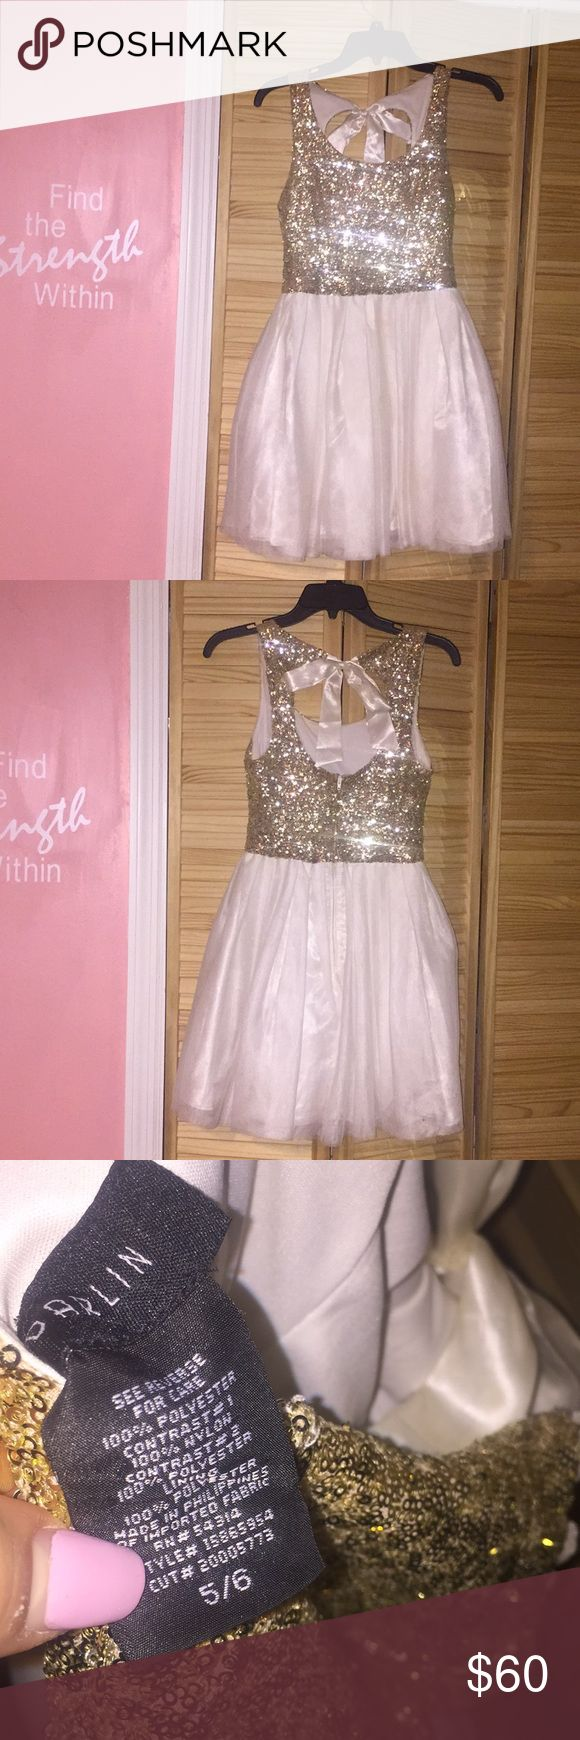 Super cute gold sequenced dress w/ bow only worn one time jcpenney Dresses Prom